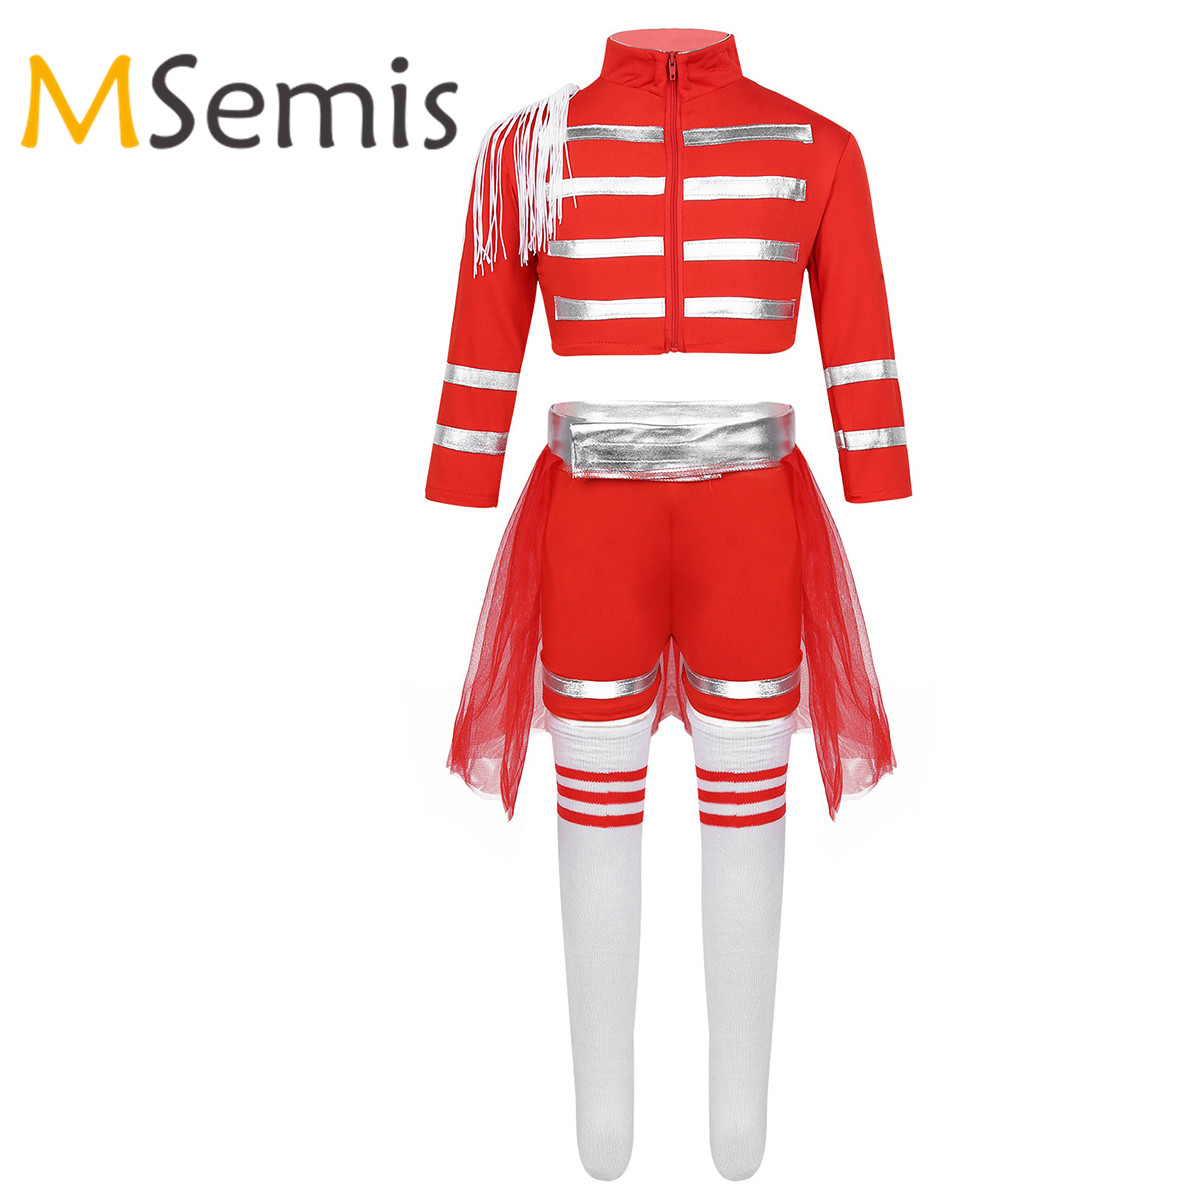 Kids Girls Gymnastics Cheerleading School Uniform Costume Outfit Crop Top With Shorts Mesh Skirt Socks Set Cosplay Fancy Dress